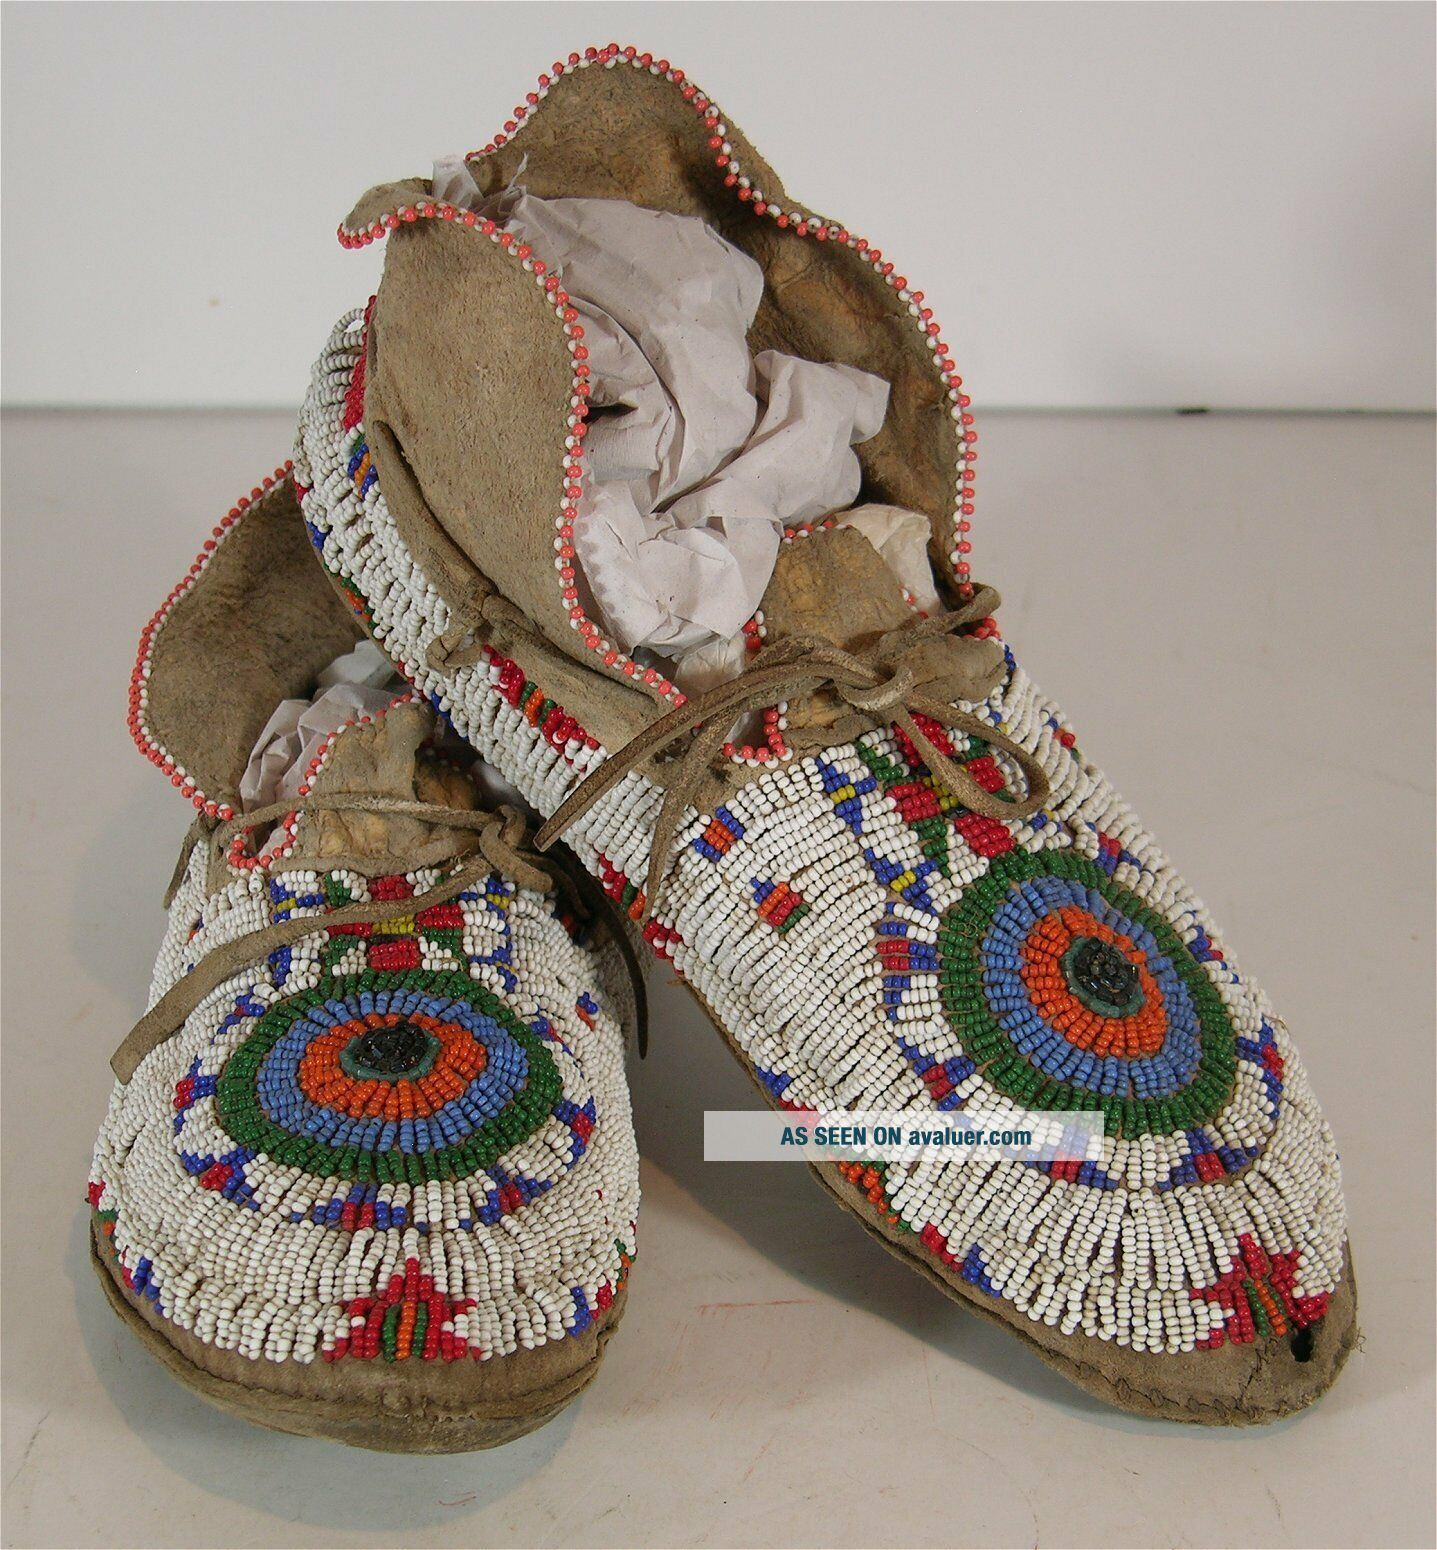 1890s PAIR NATIVE AMERICAN SIOUX INDIAN BEAD DECORATED HIDE MOCCASINS BEADED